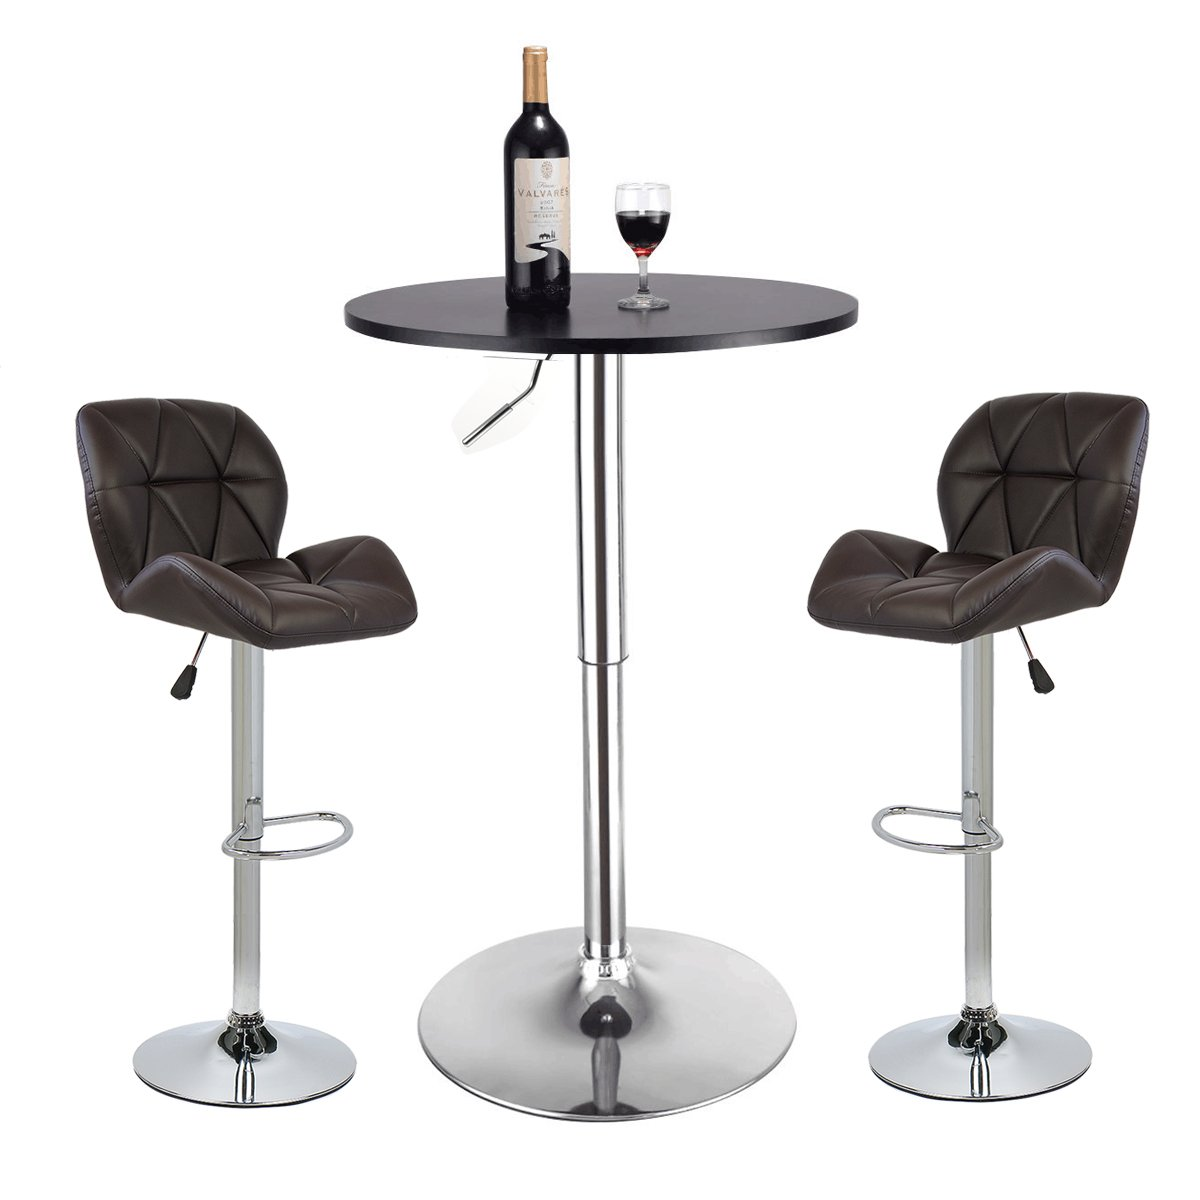 Pub Table Set 3 Piece - 24 inch Round Table with 2 Leatherette Chairs - Height Adjustable (Brown Barstools + Black Pub Table)